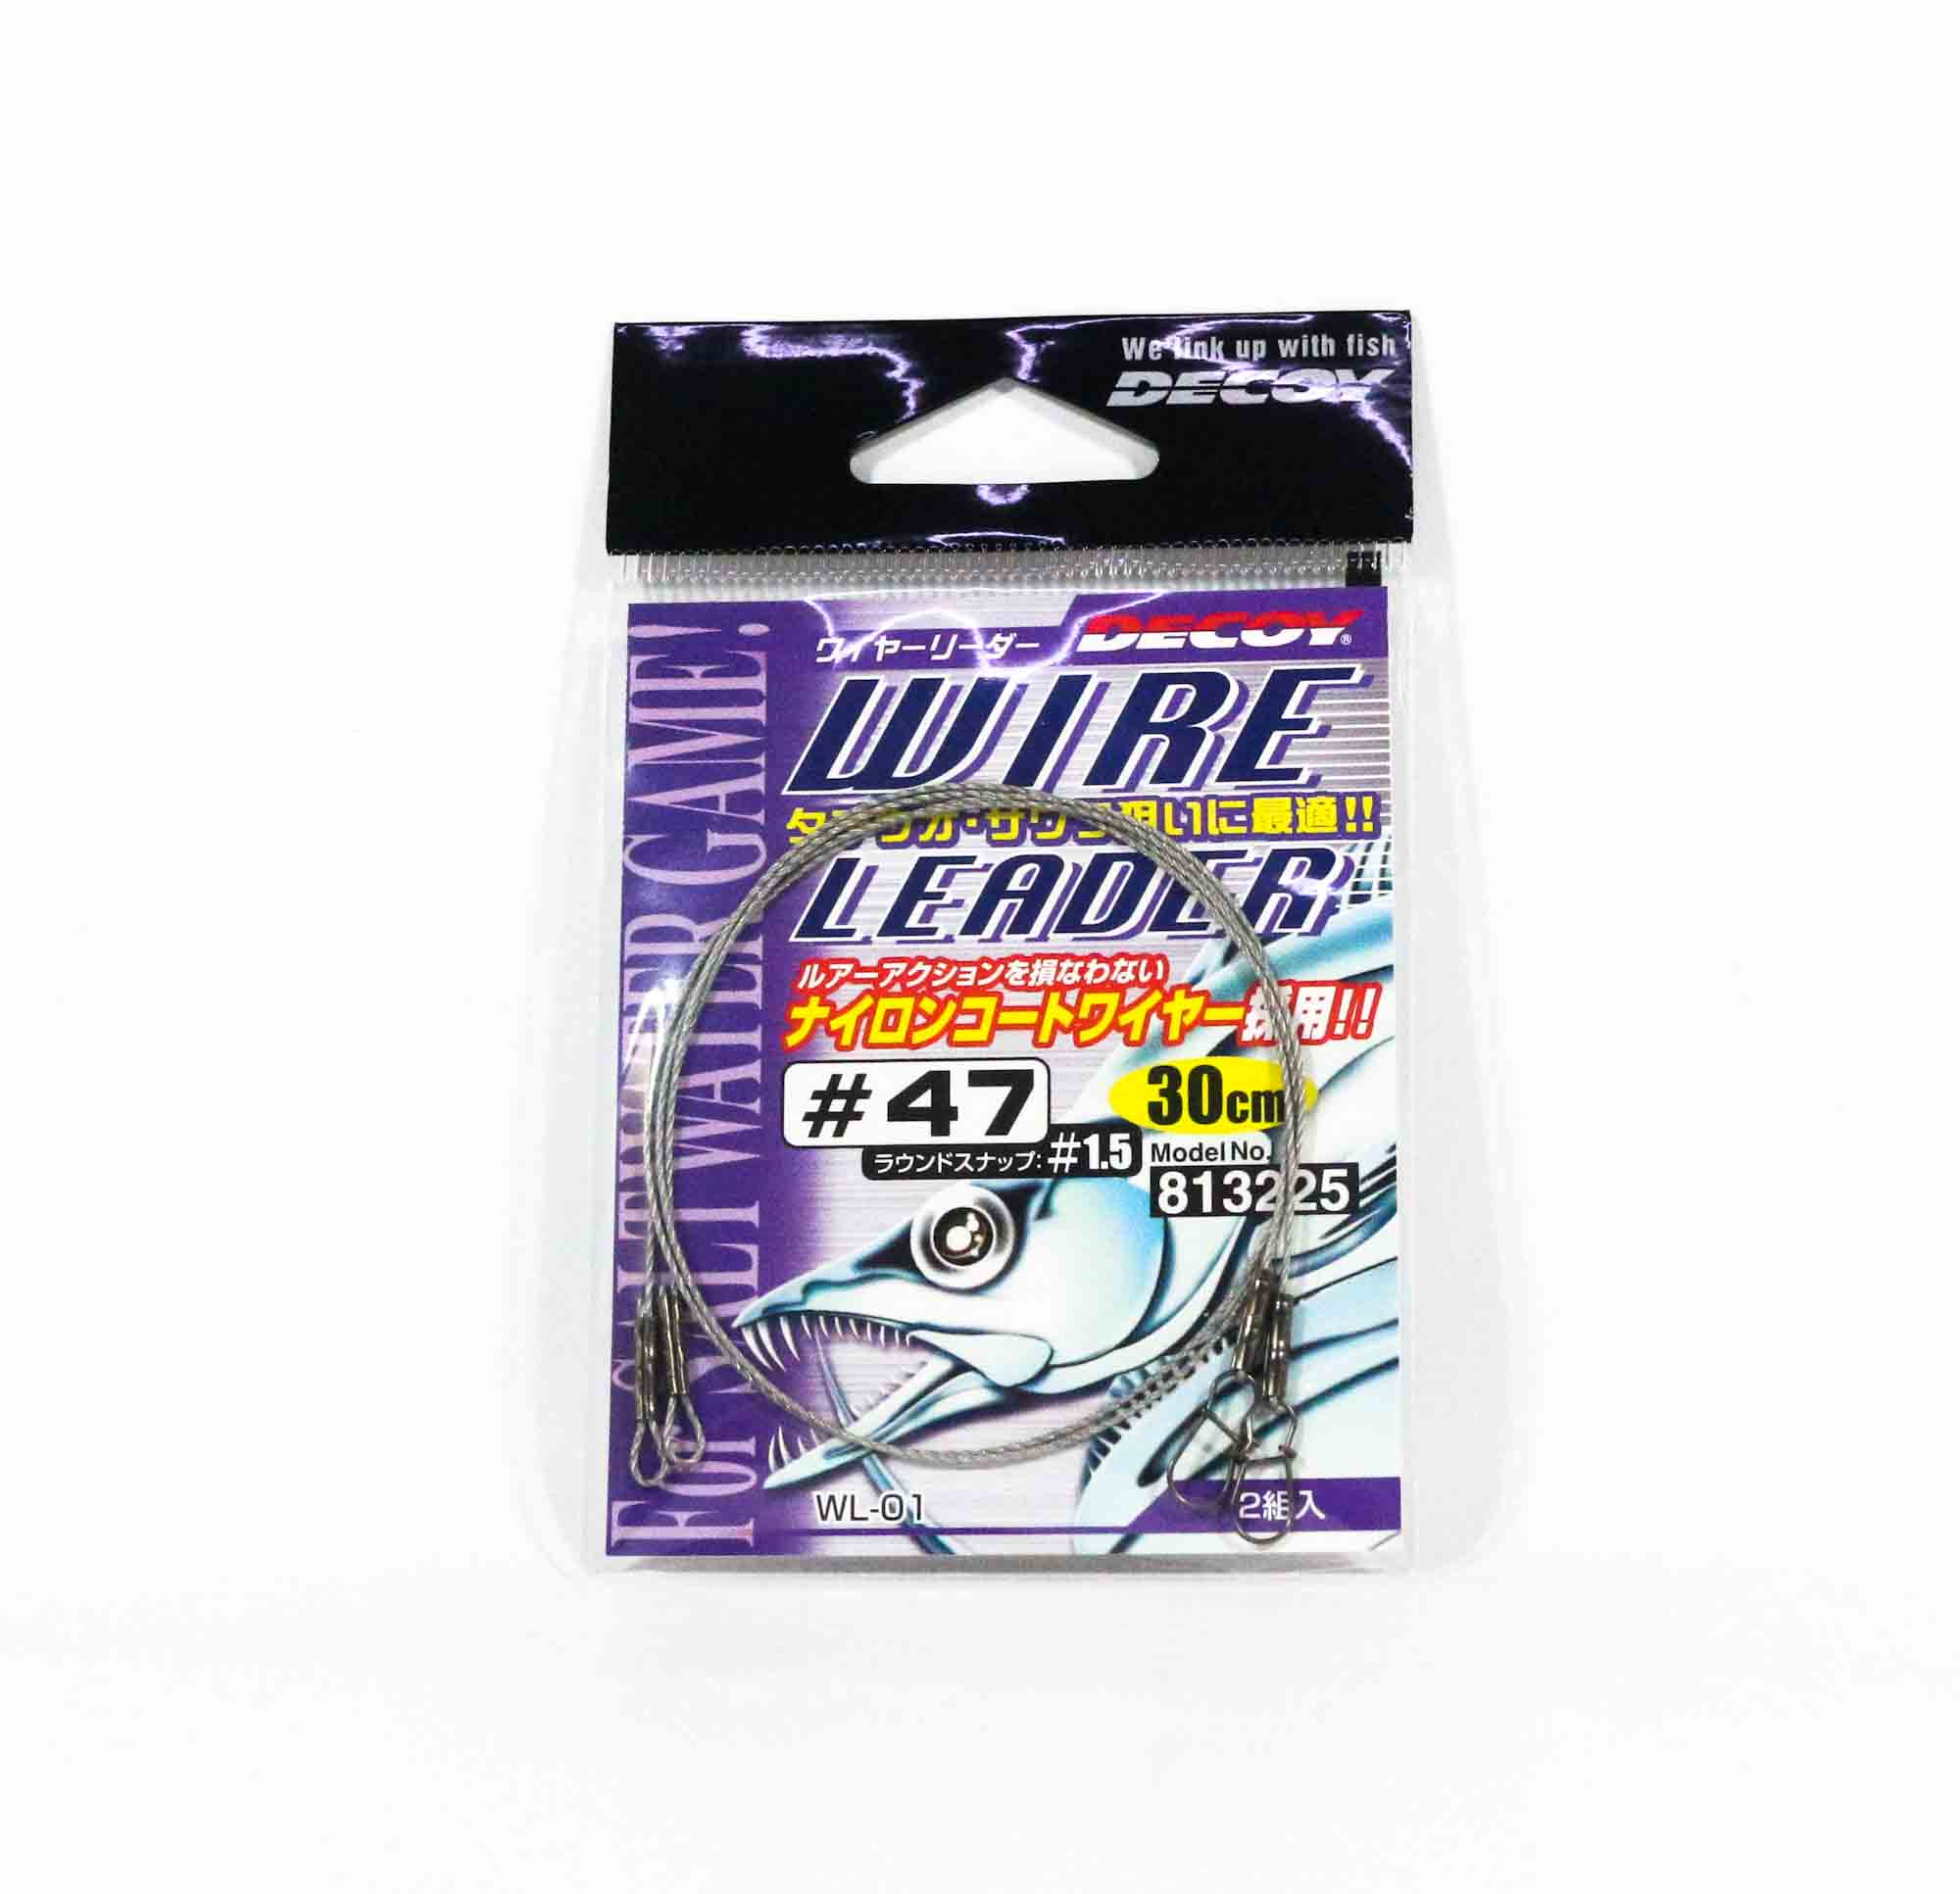 Decoy WL-01 47-30 cm Nylon Coated Wire Leader Size 1.5 Snap (3225)